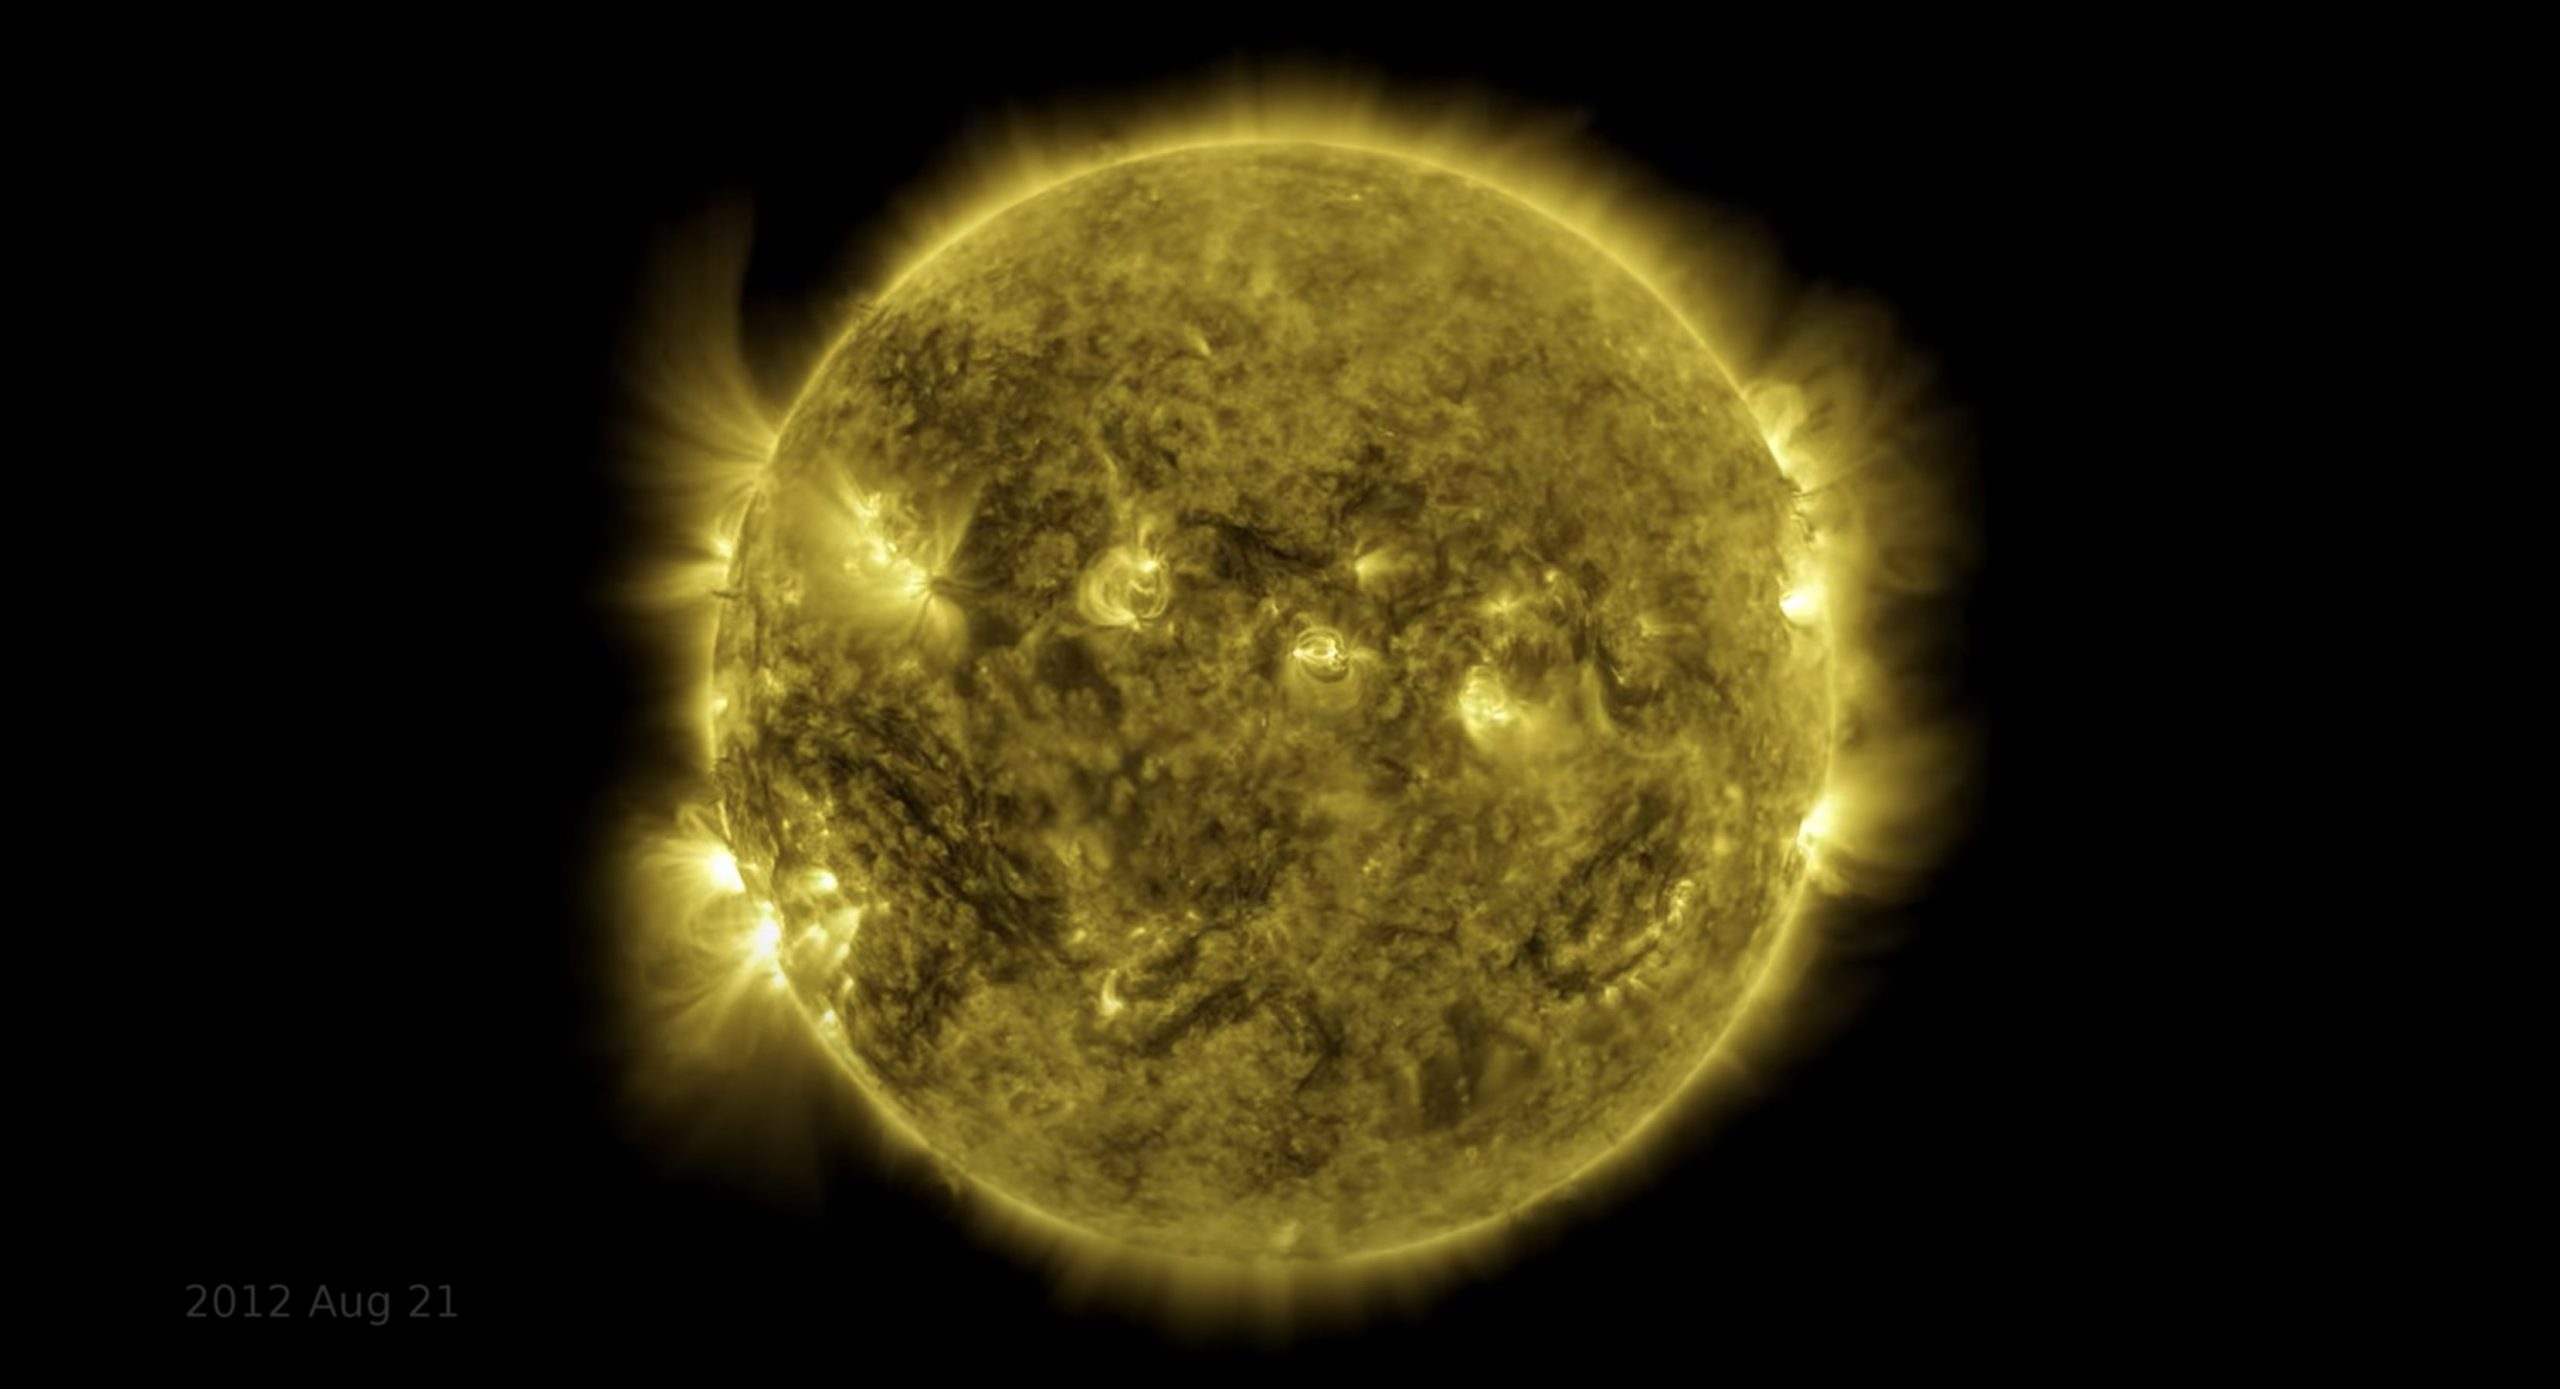 Watch 10 Years Of Images The Sun In This Captivating Video